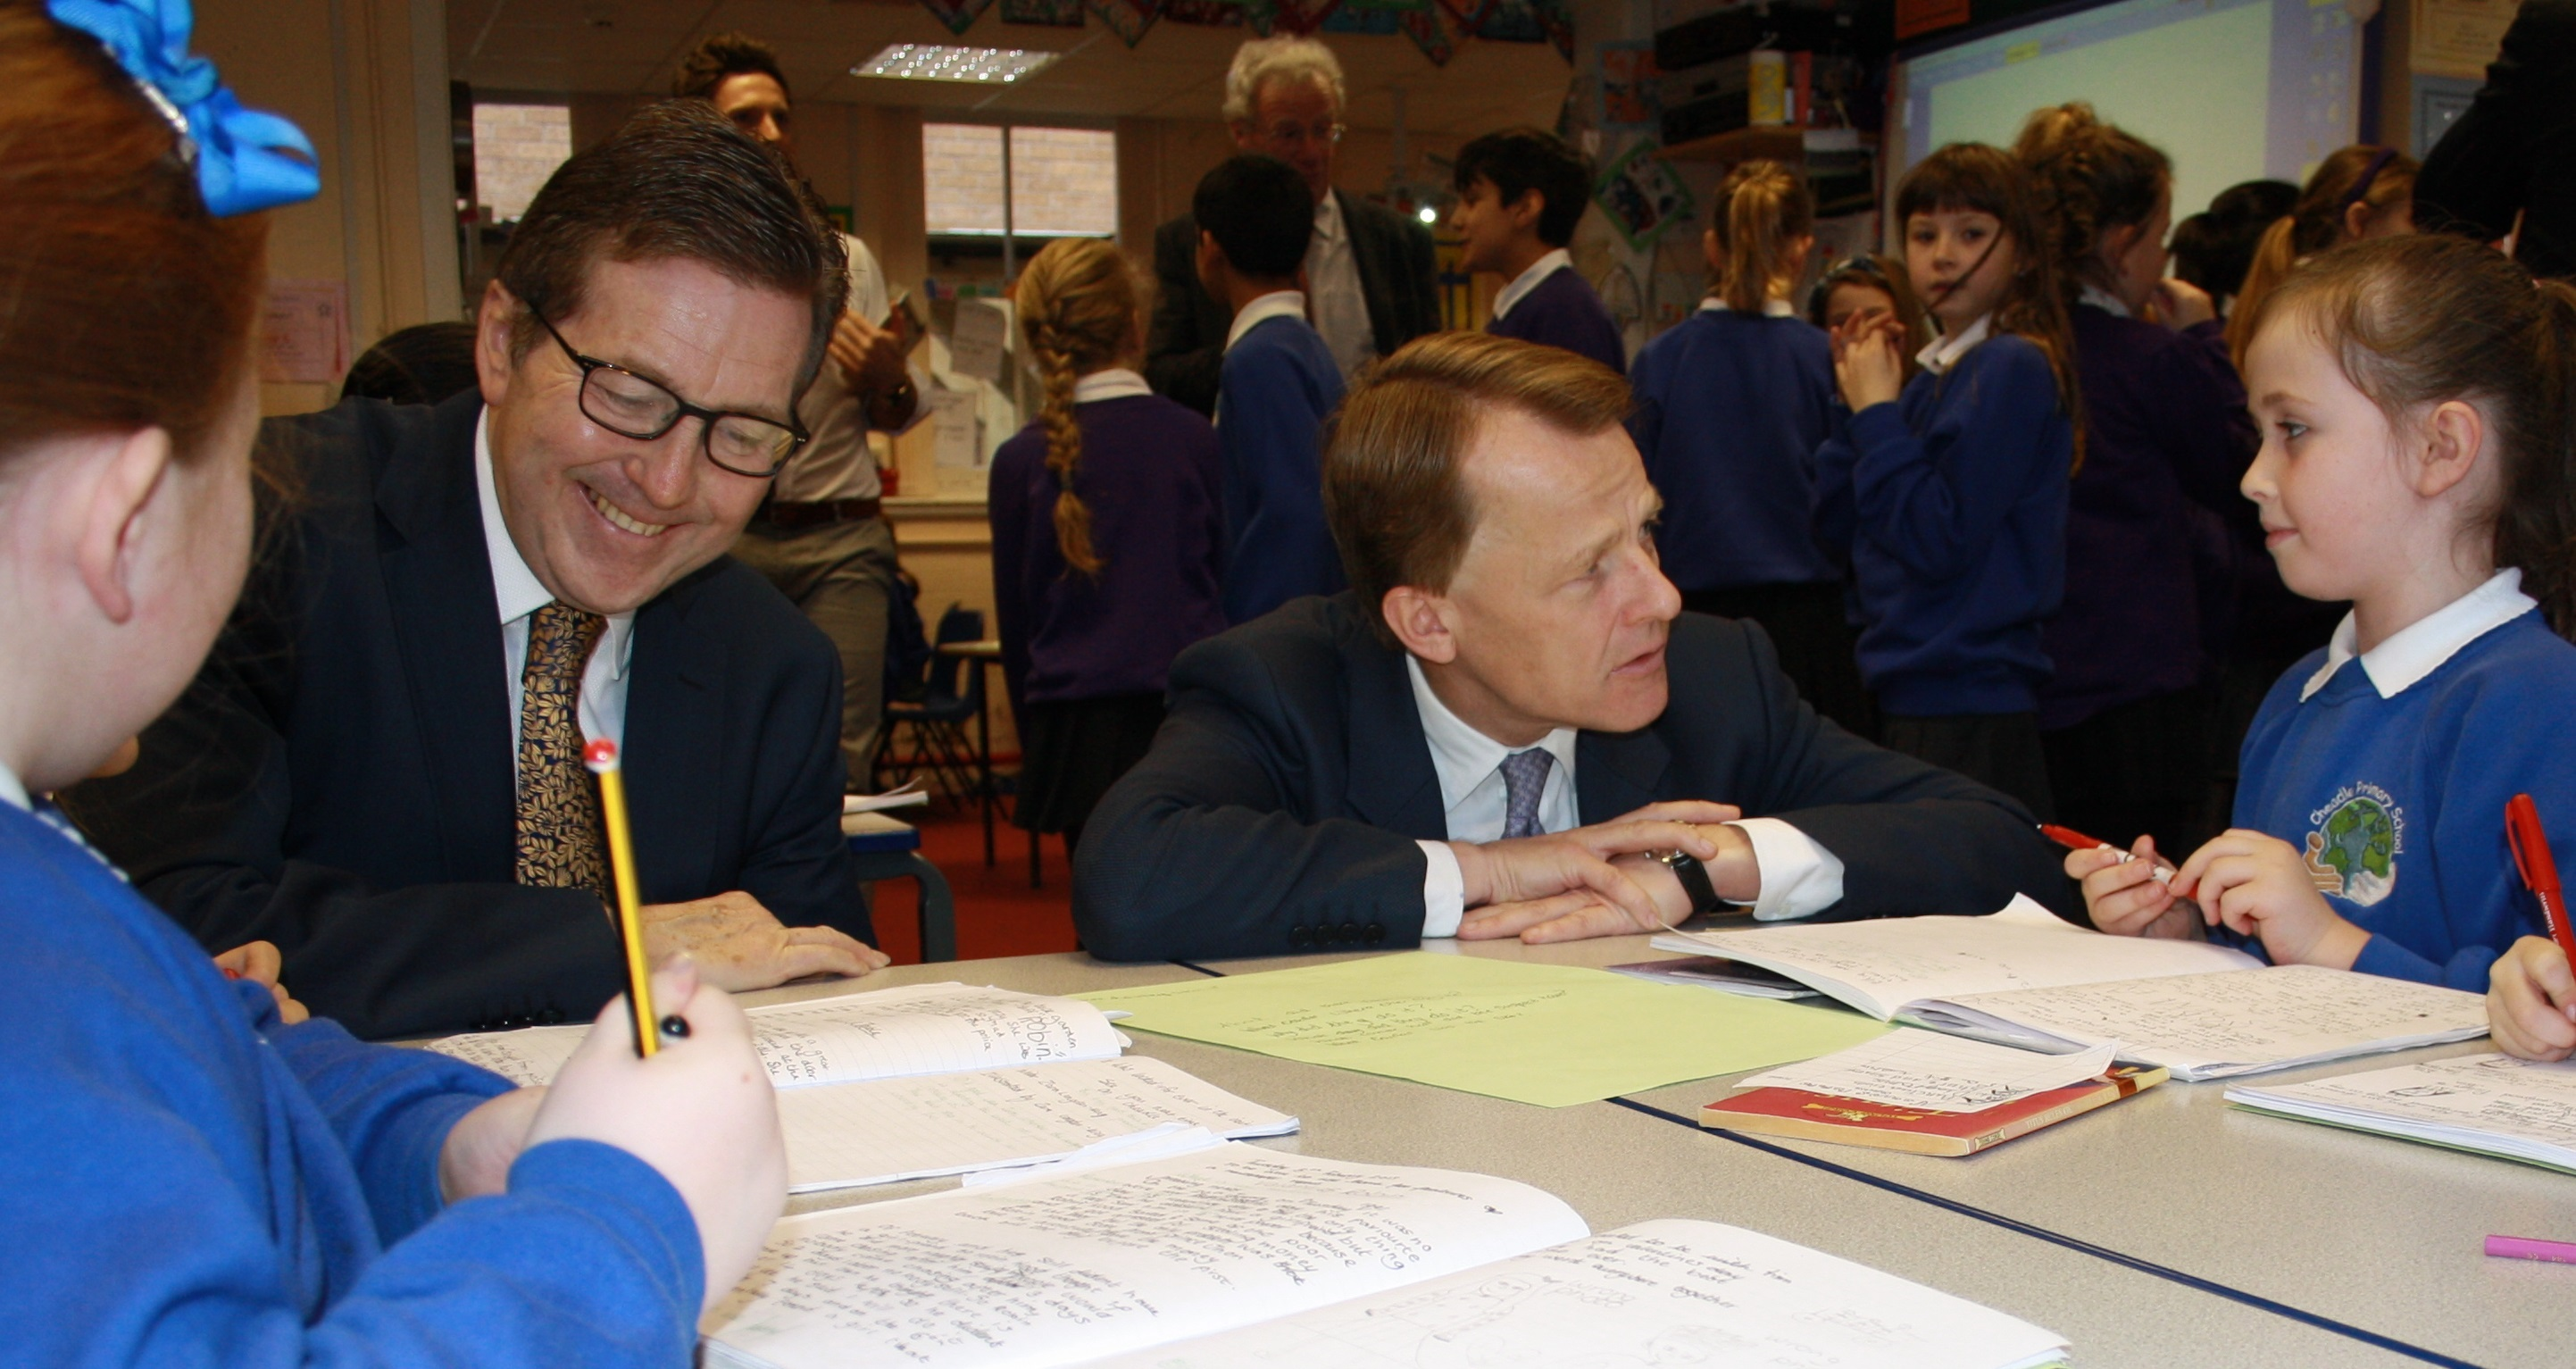 key_Cheadle_Primary_School_David_Laws.jpg